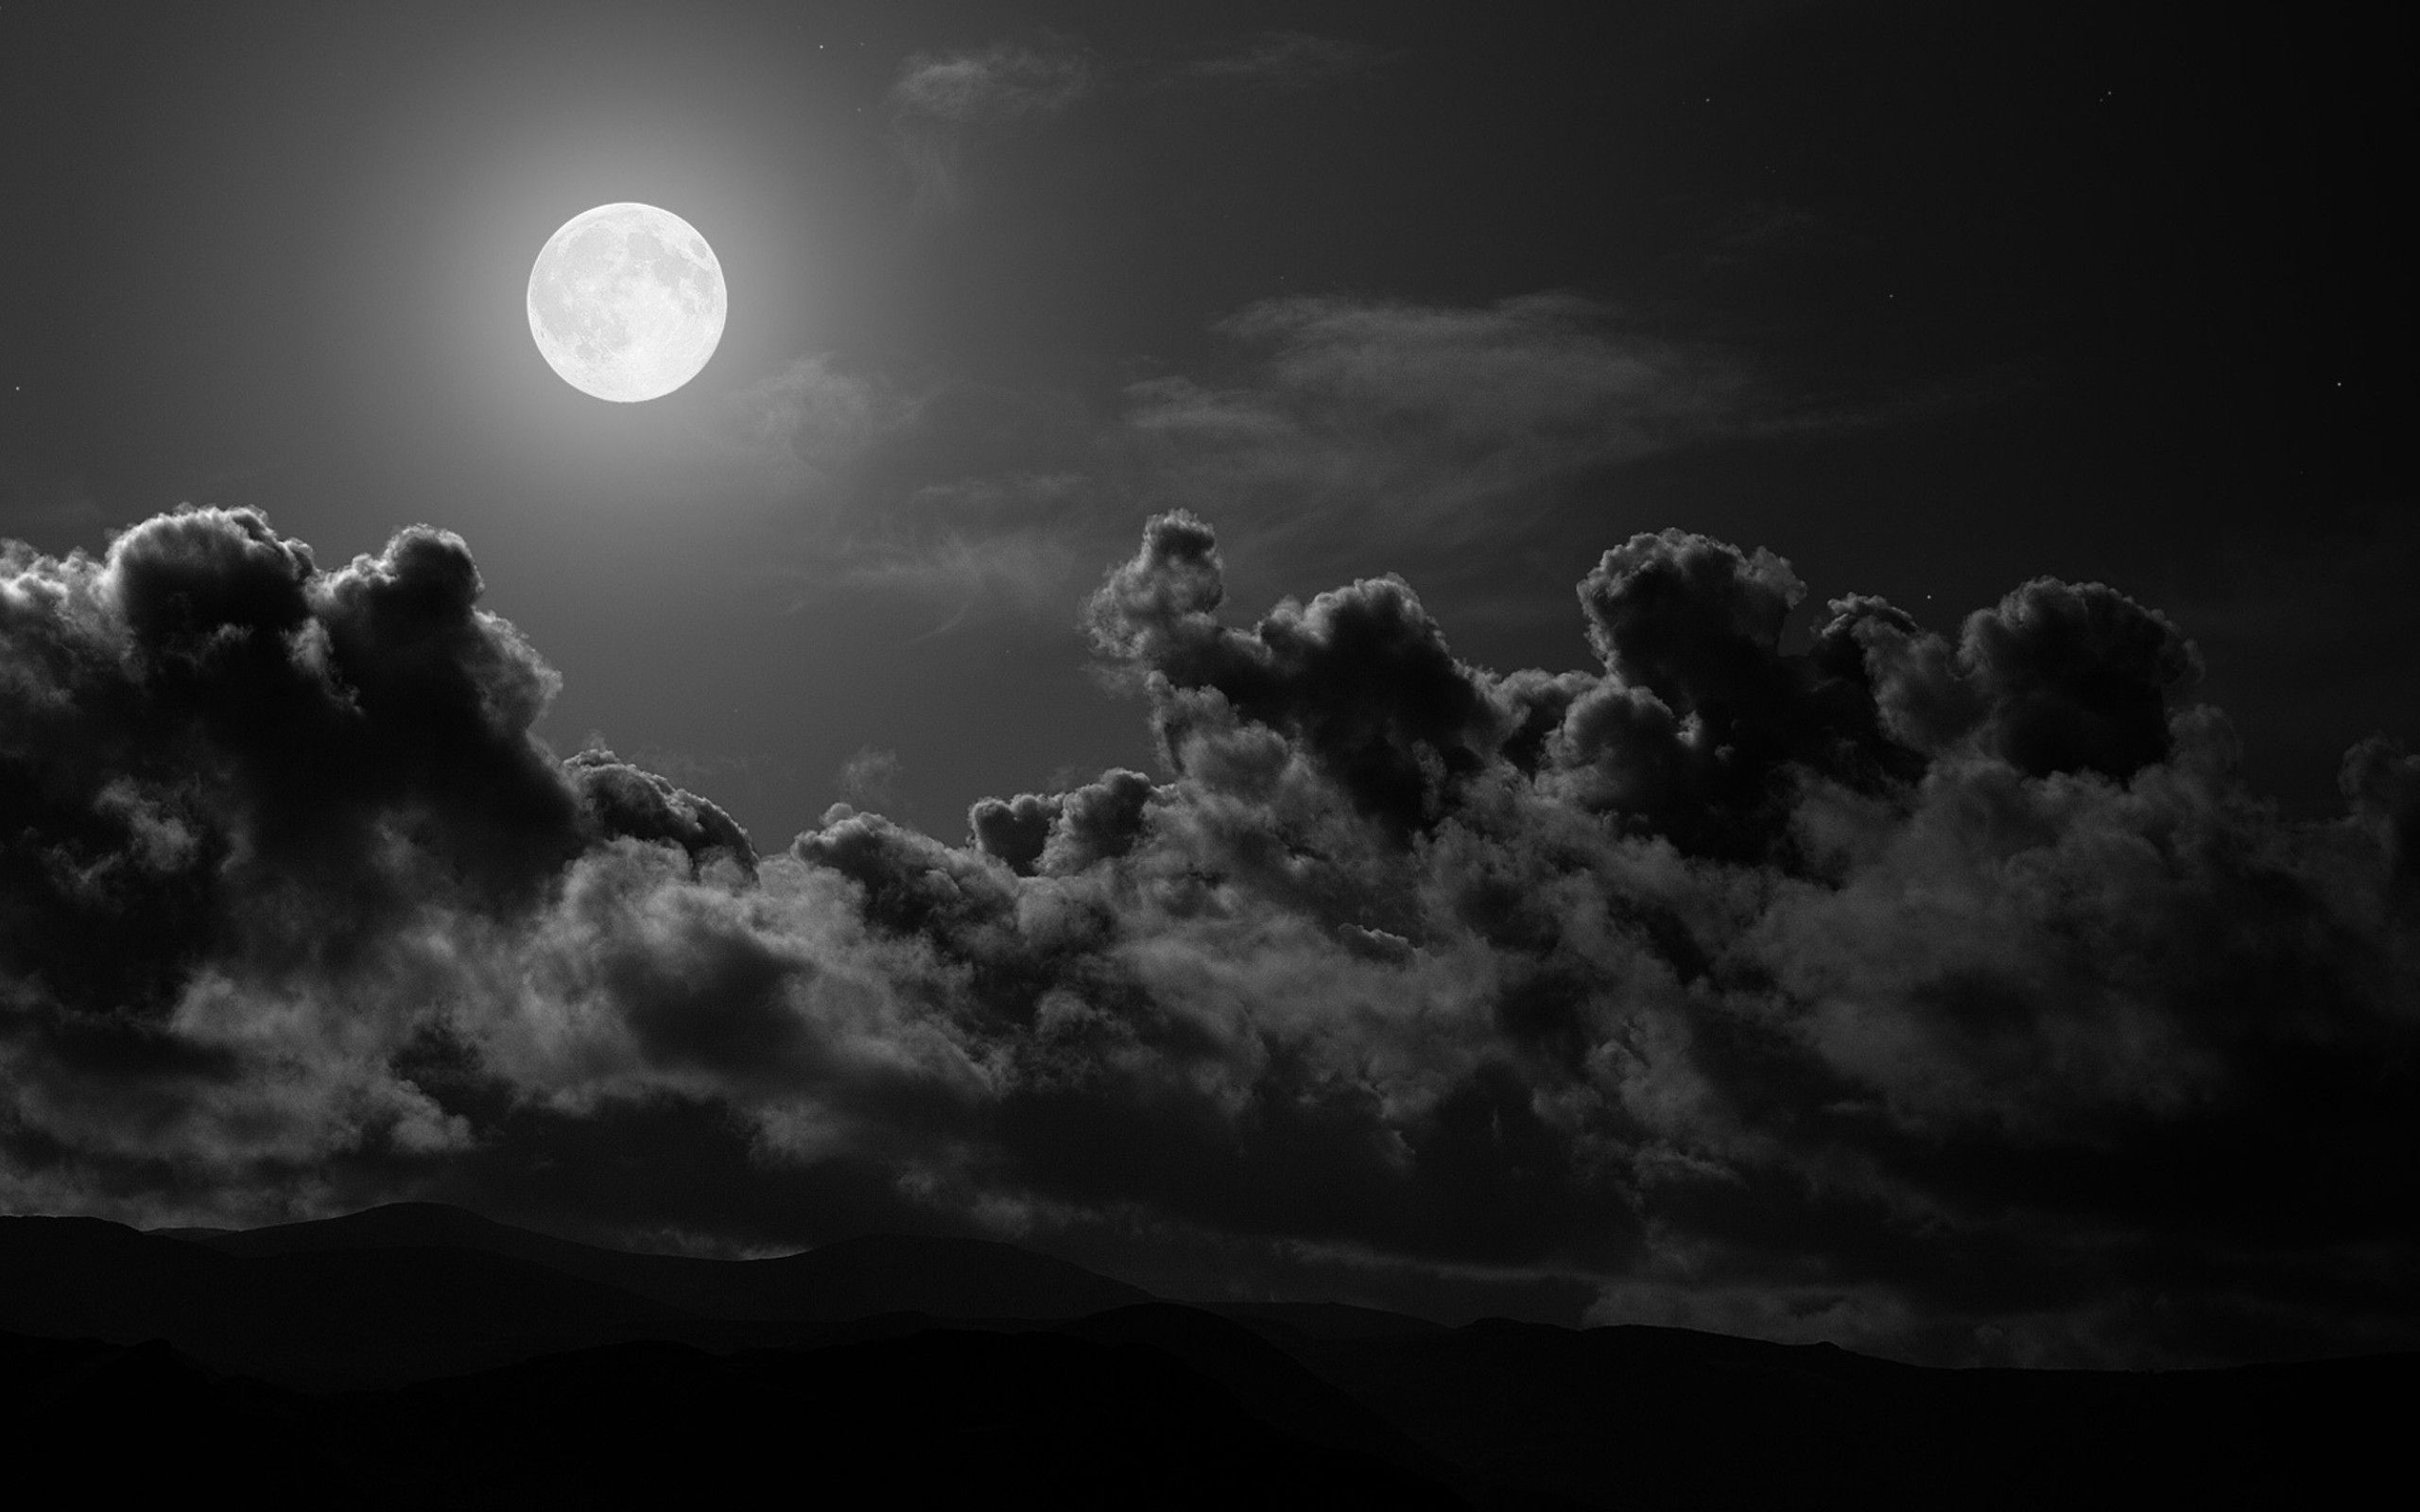 moon wallpapers - full hd wallpaper search | luoghi da visitare